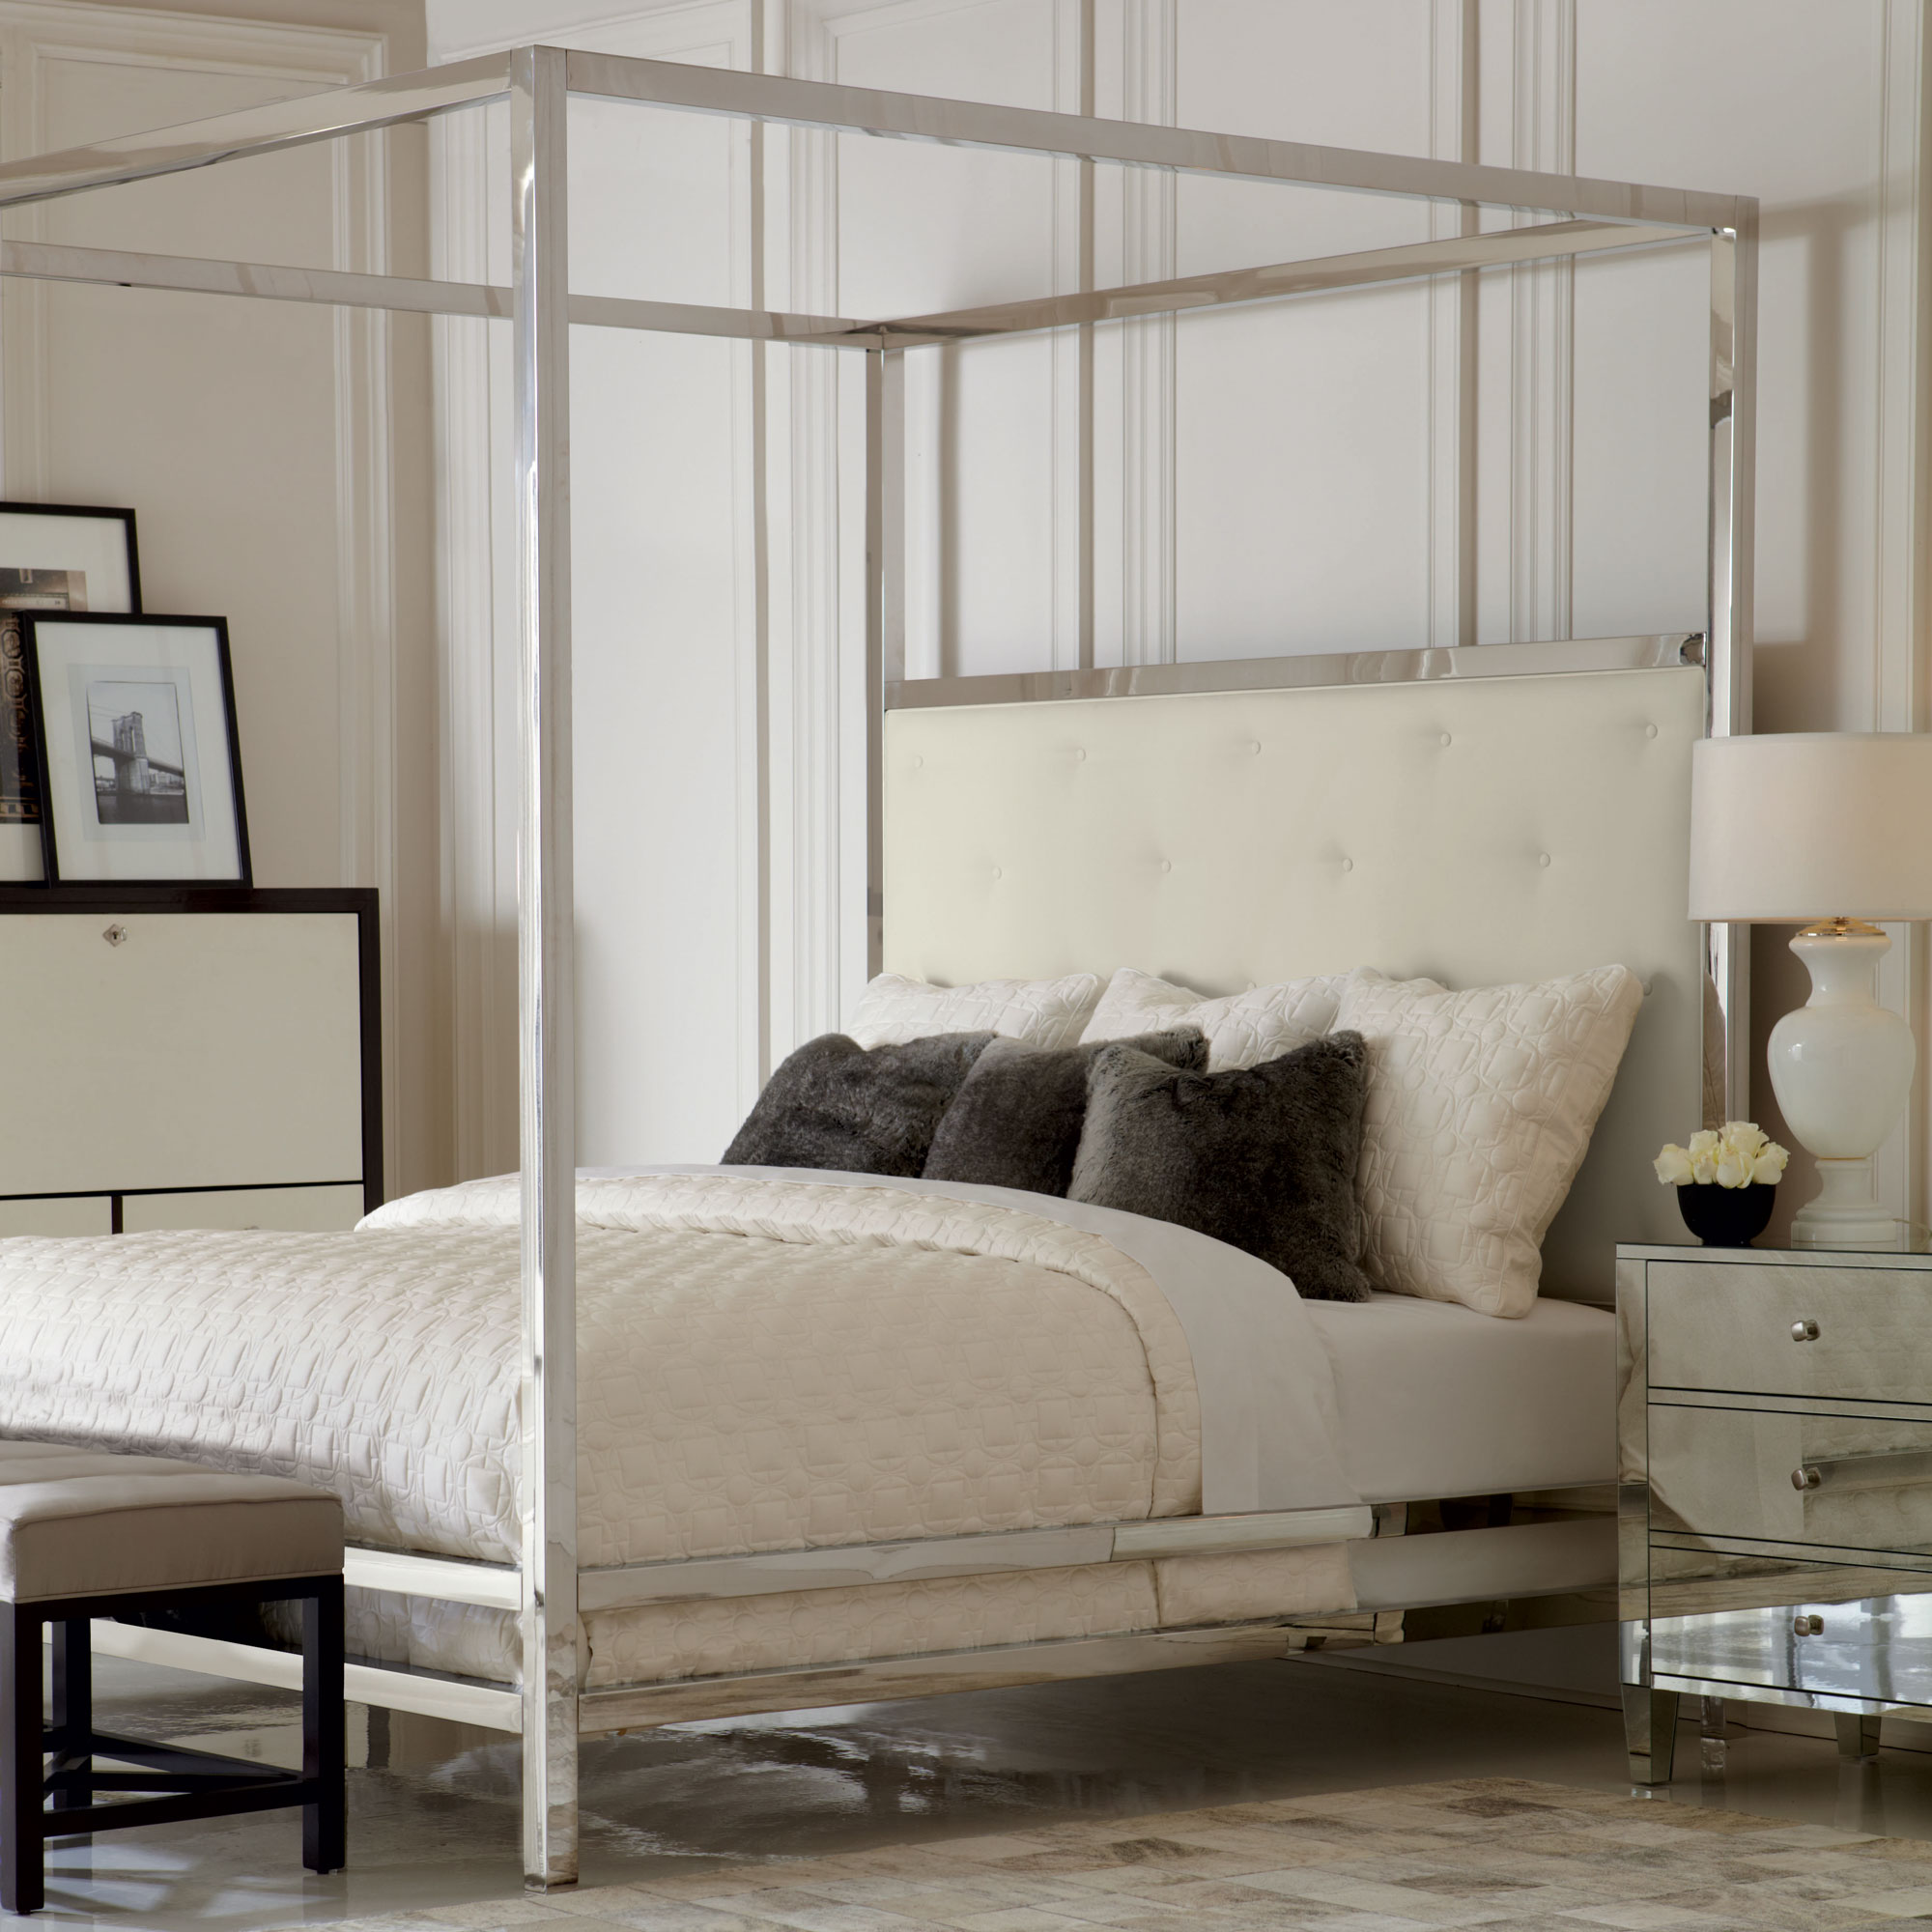 Fabric Beds Canada Canopy Beds Mcgrath Ii Blog